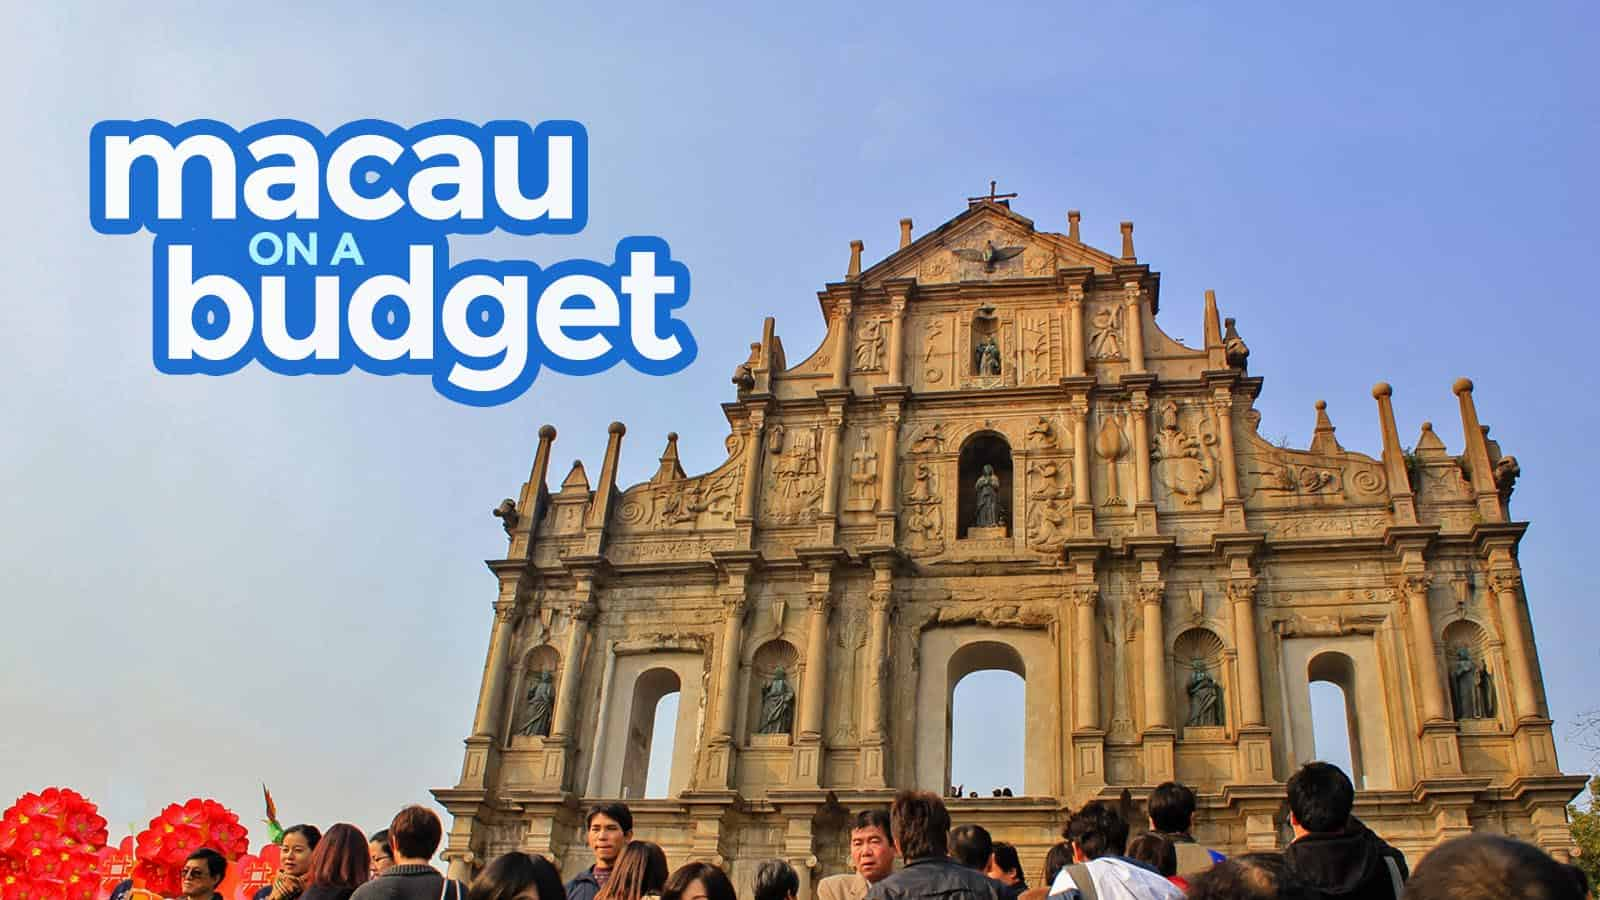 MACAU TRAVEL GUIDE with Budget Itinerary